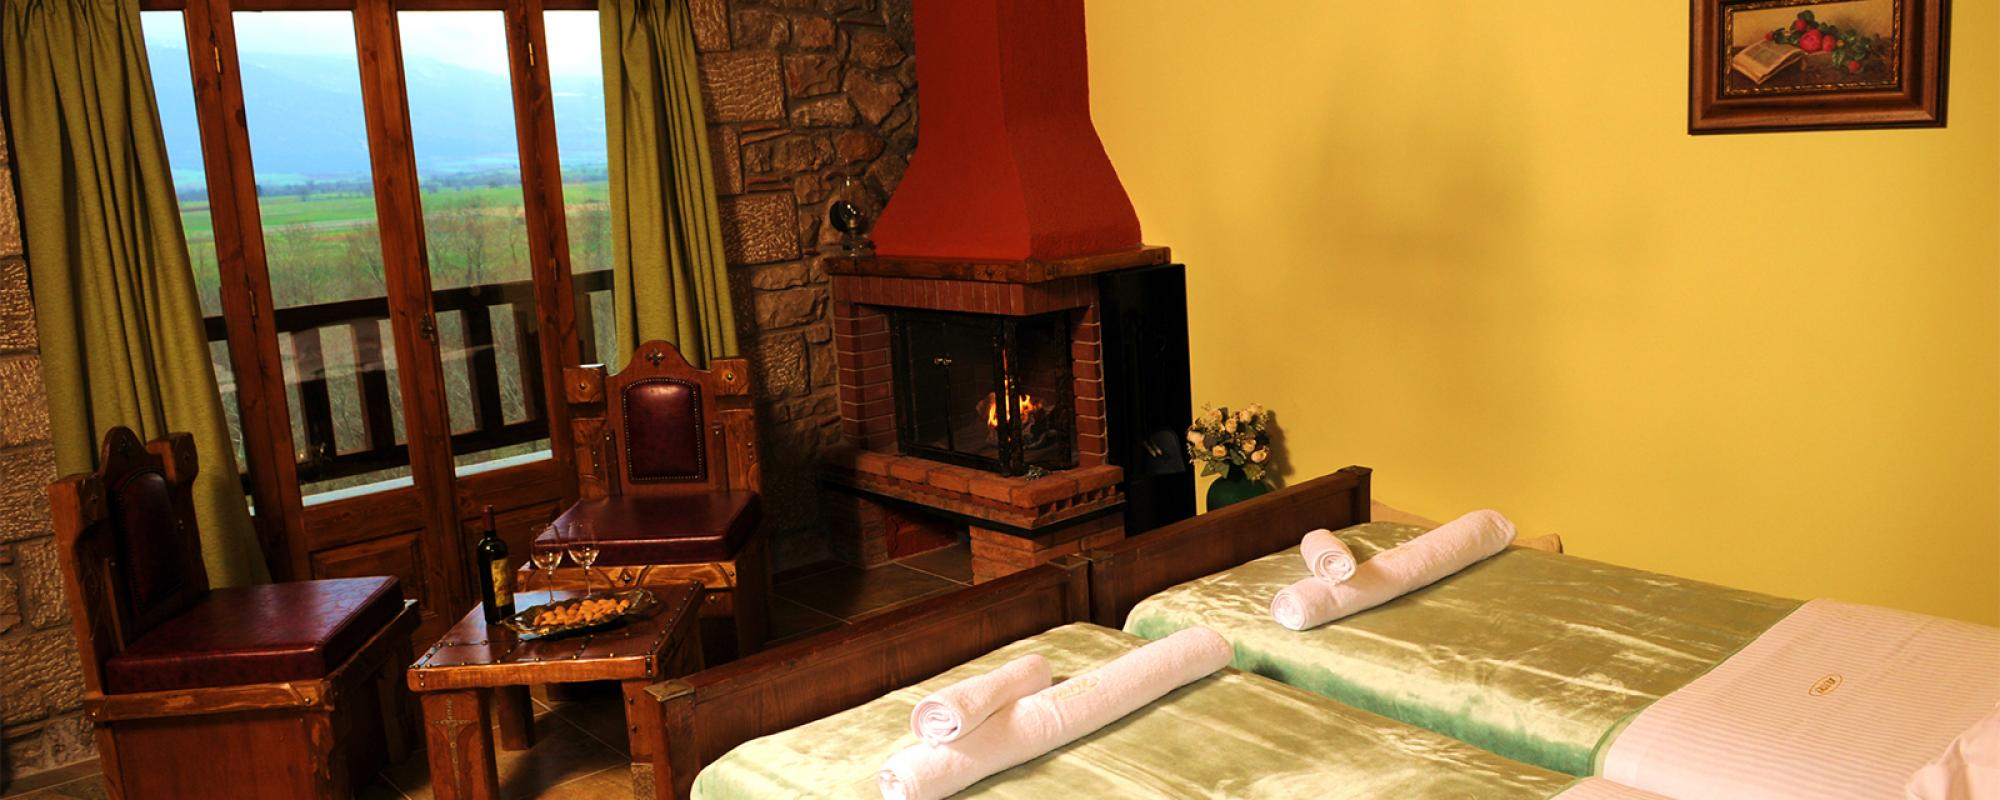 Delux Double Room with Fireplace